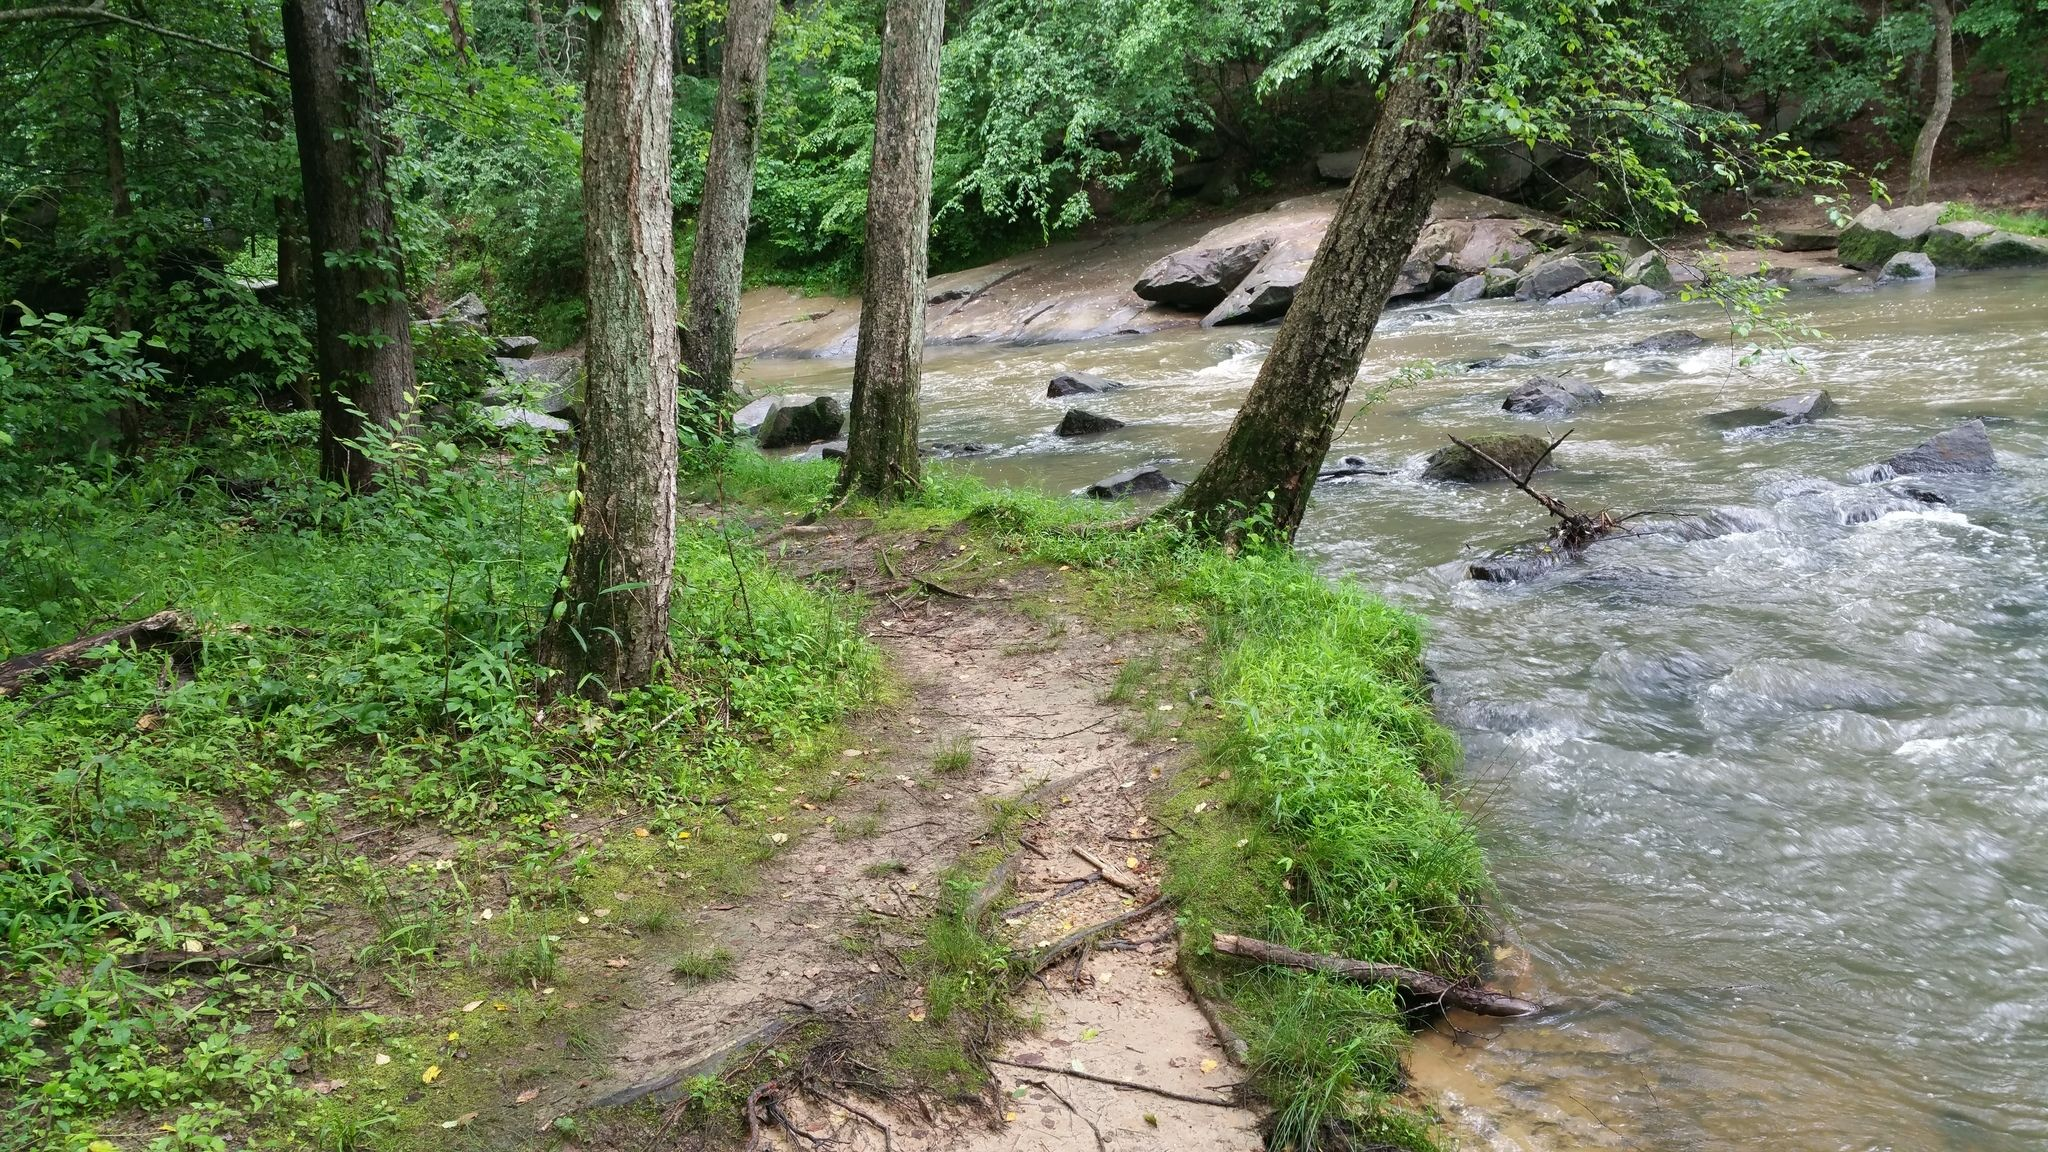 Best Trails in William B. Umstead State Park - North ... on crabtree bike trail map, wilson trail map, keller trail map, walker trail map, gardner trail map, black creek mississippi trail map, caldwell trail map, underdown trail map, woods trail map, burke trail map, morrison trail map, cherry trail map, crowder's mountain trail map, nelson trail map, hunt trail map, hunter trail map, horton trail map, butler trail map,